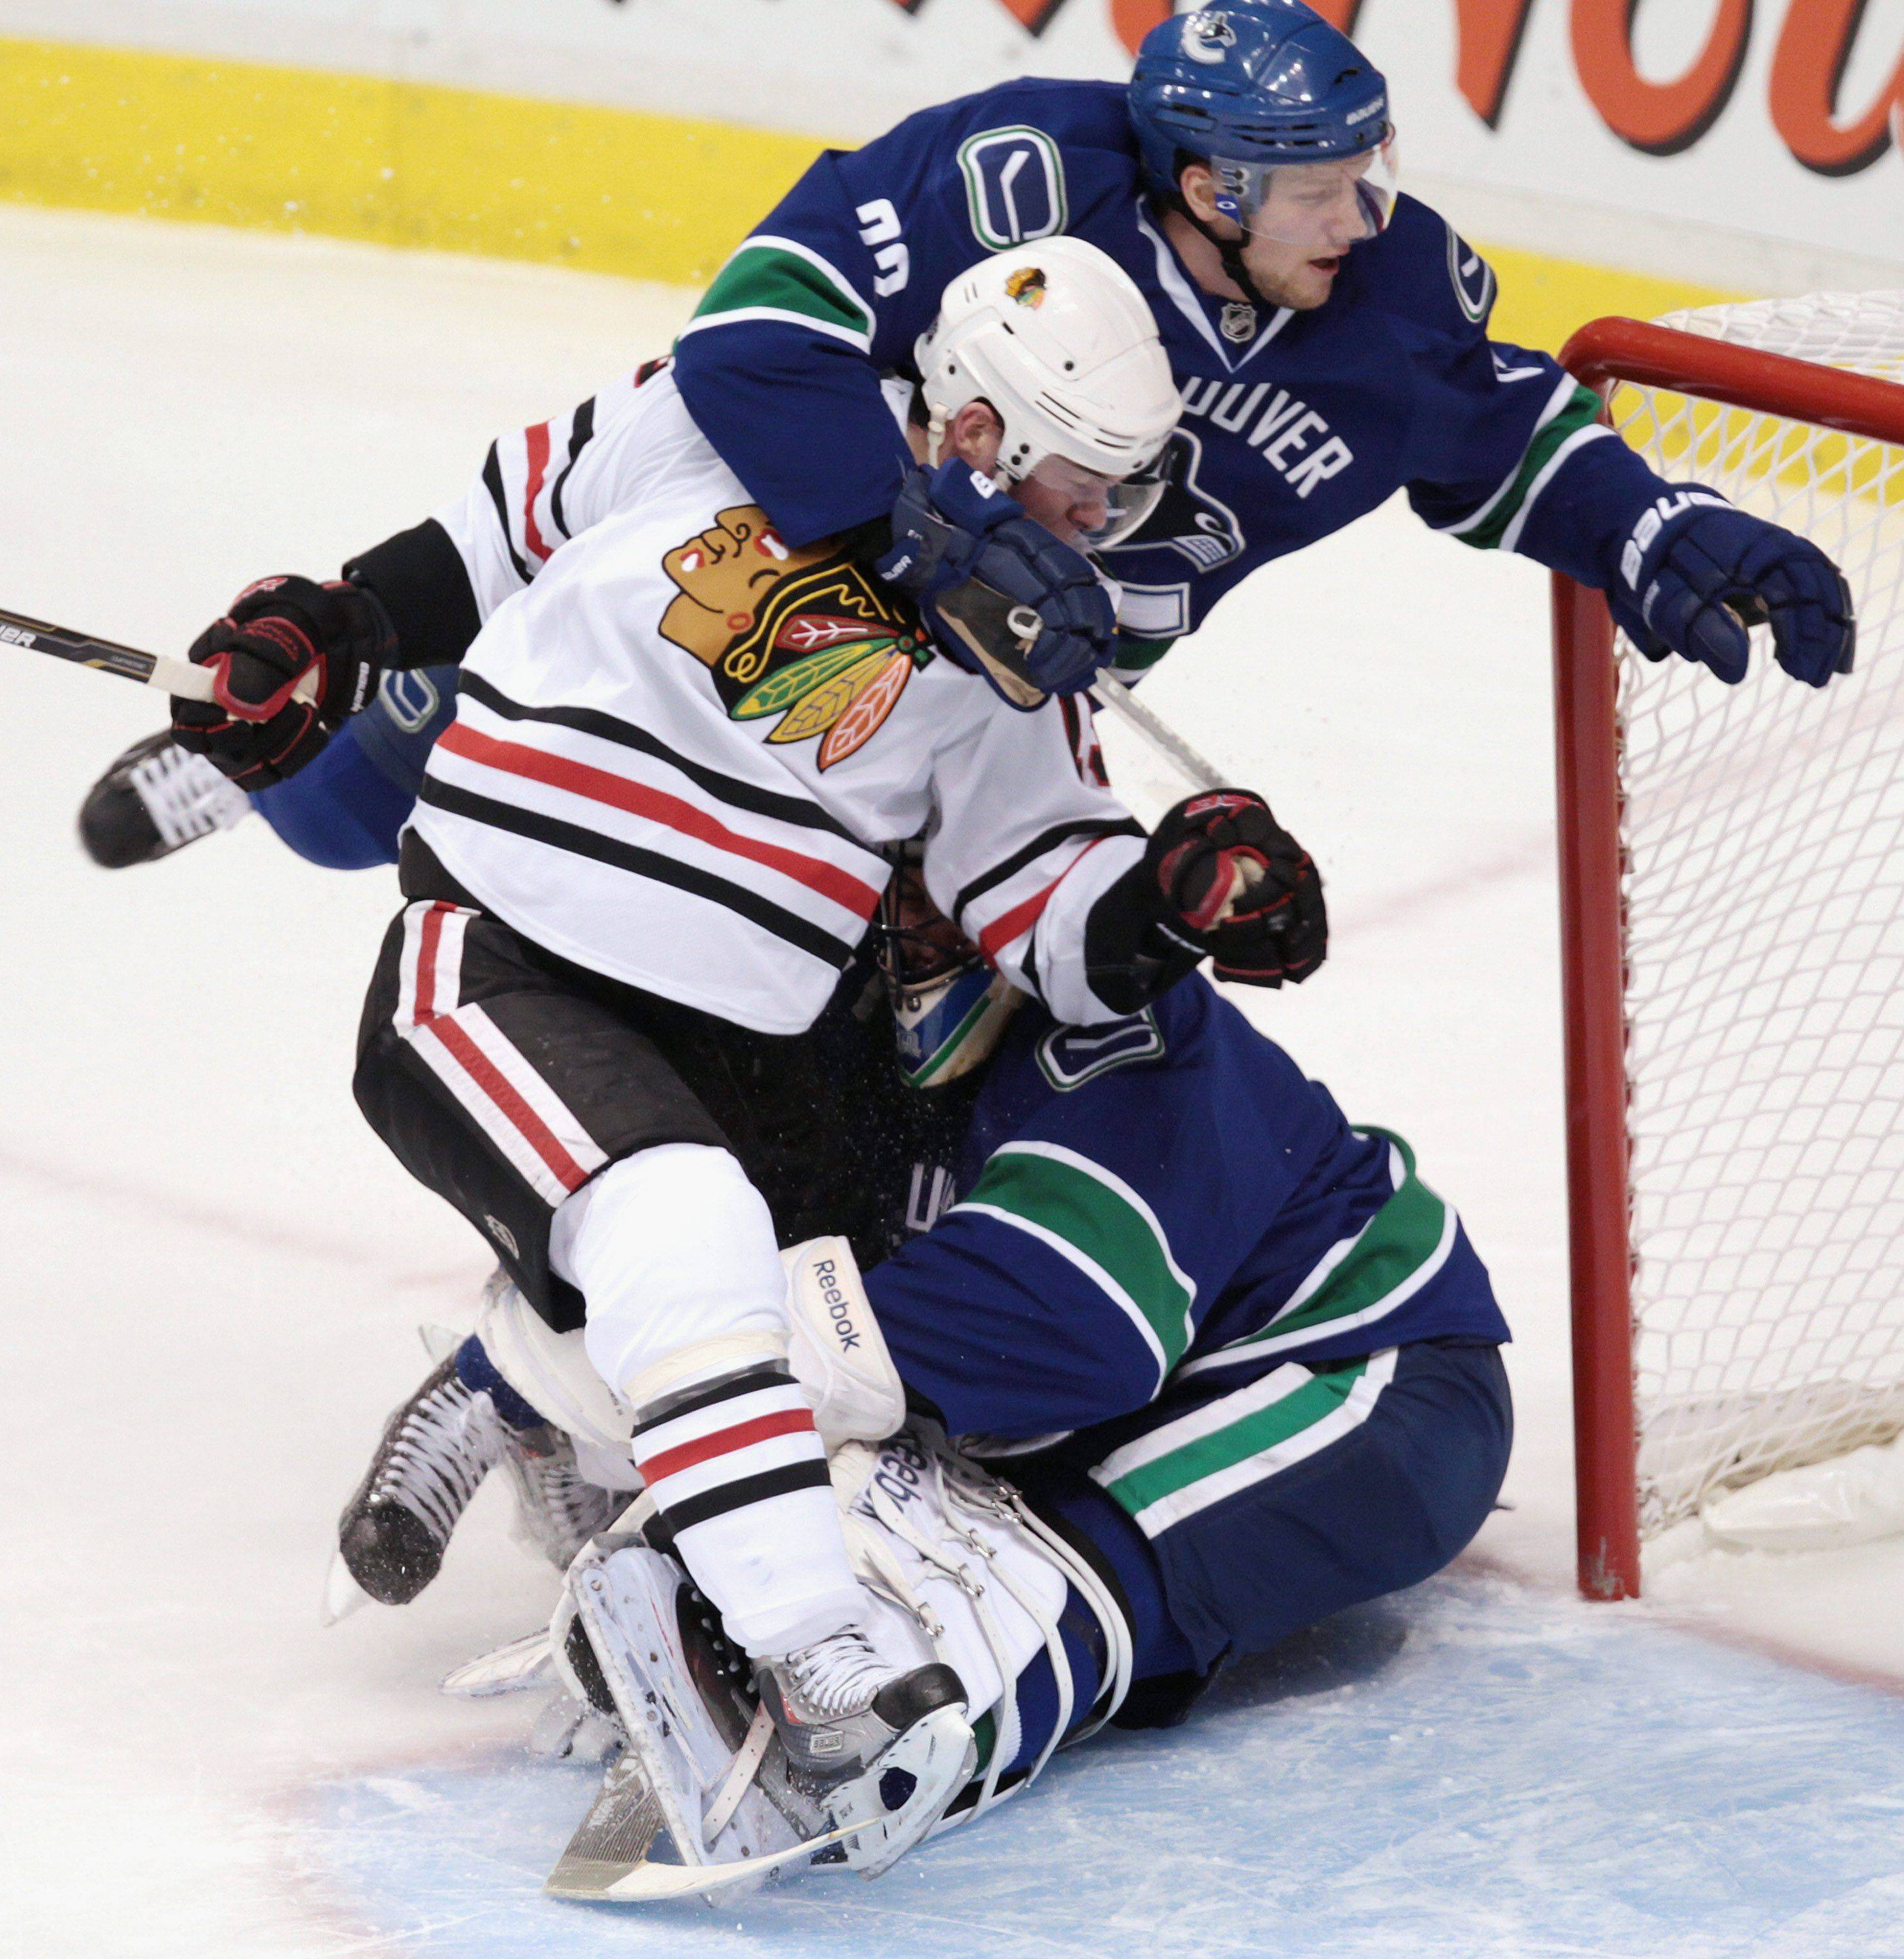 Jonathan Toews, left, and Vancouver Canucks' Alexander Edler, of Sweden, crash into Canucks goalie Roberto Luongo during the first period of Game 5 of an NHL hockey Stanley Cup playoffs first-round series in Vancouver, British Columbia, on Thursday April 21, 2011.